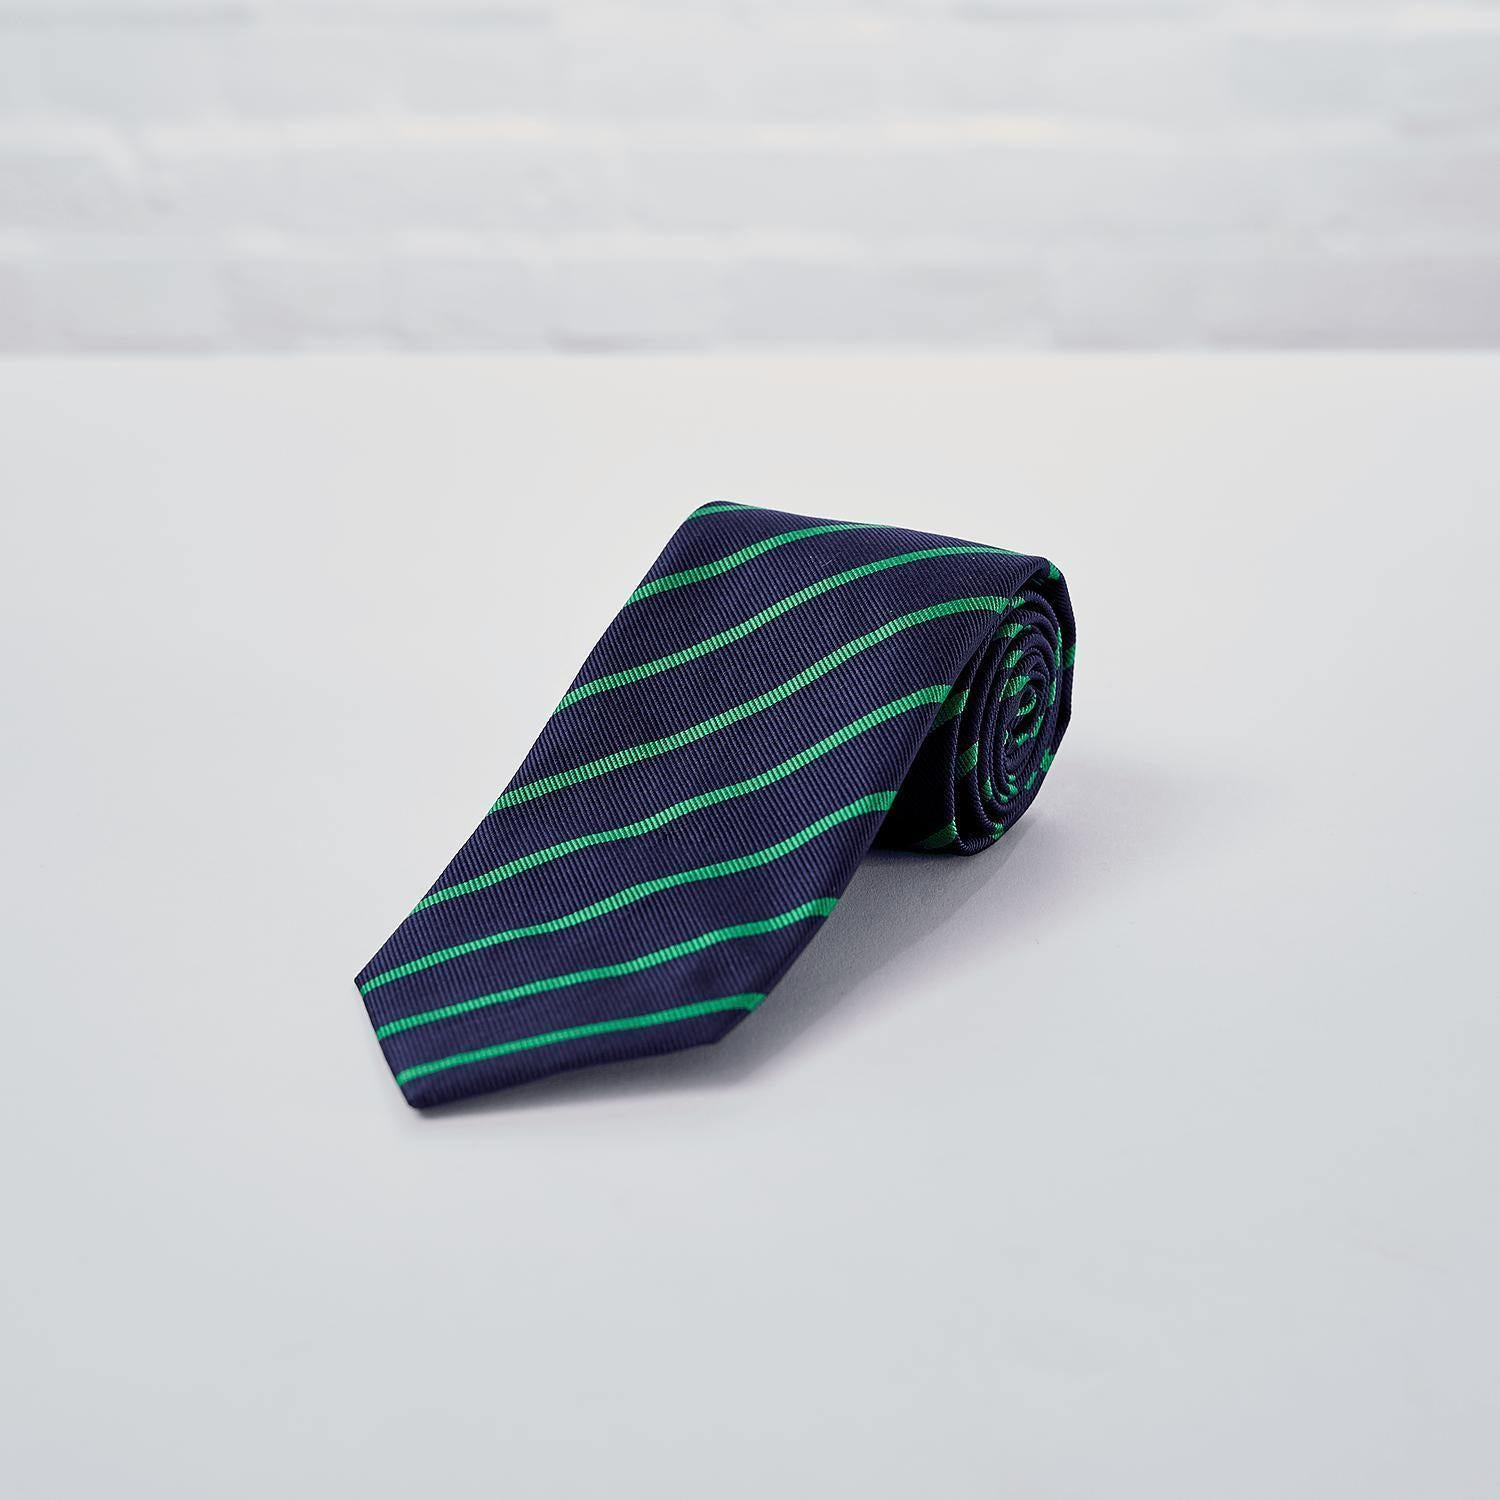 Navy Green Striped Woven Silk Tie Hand Finished - British Made